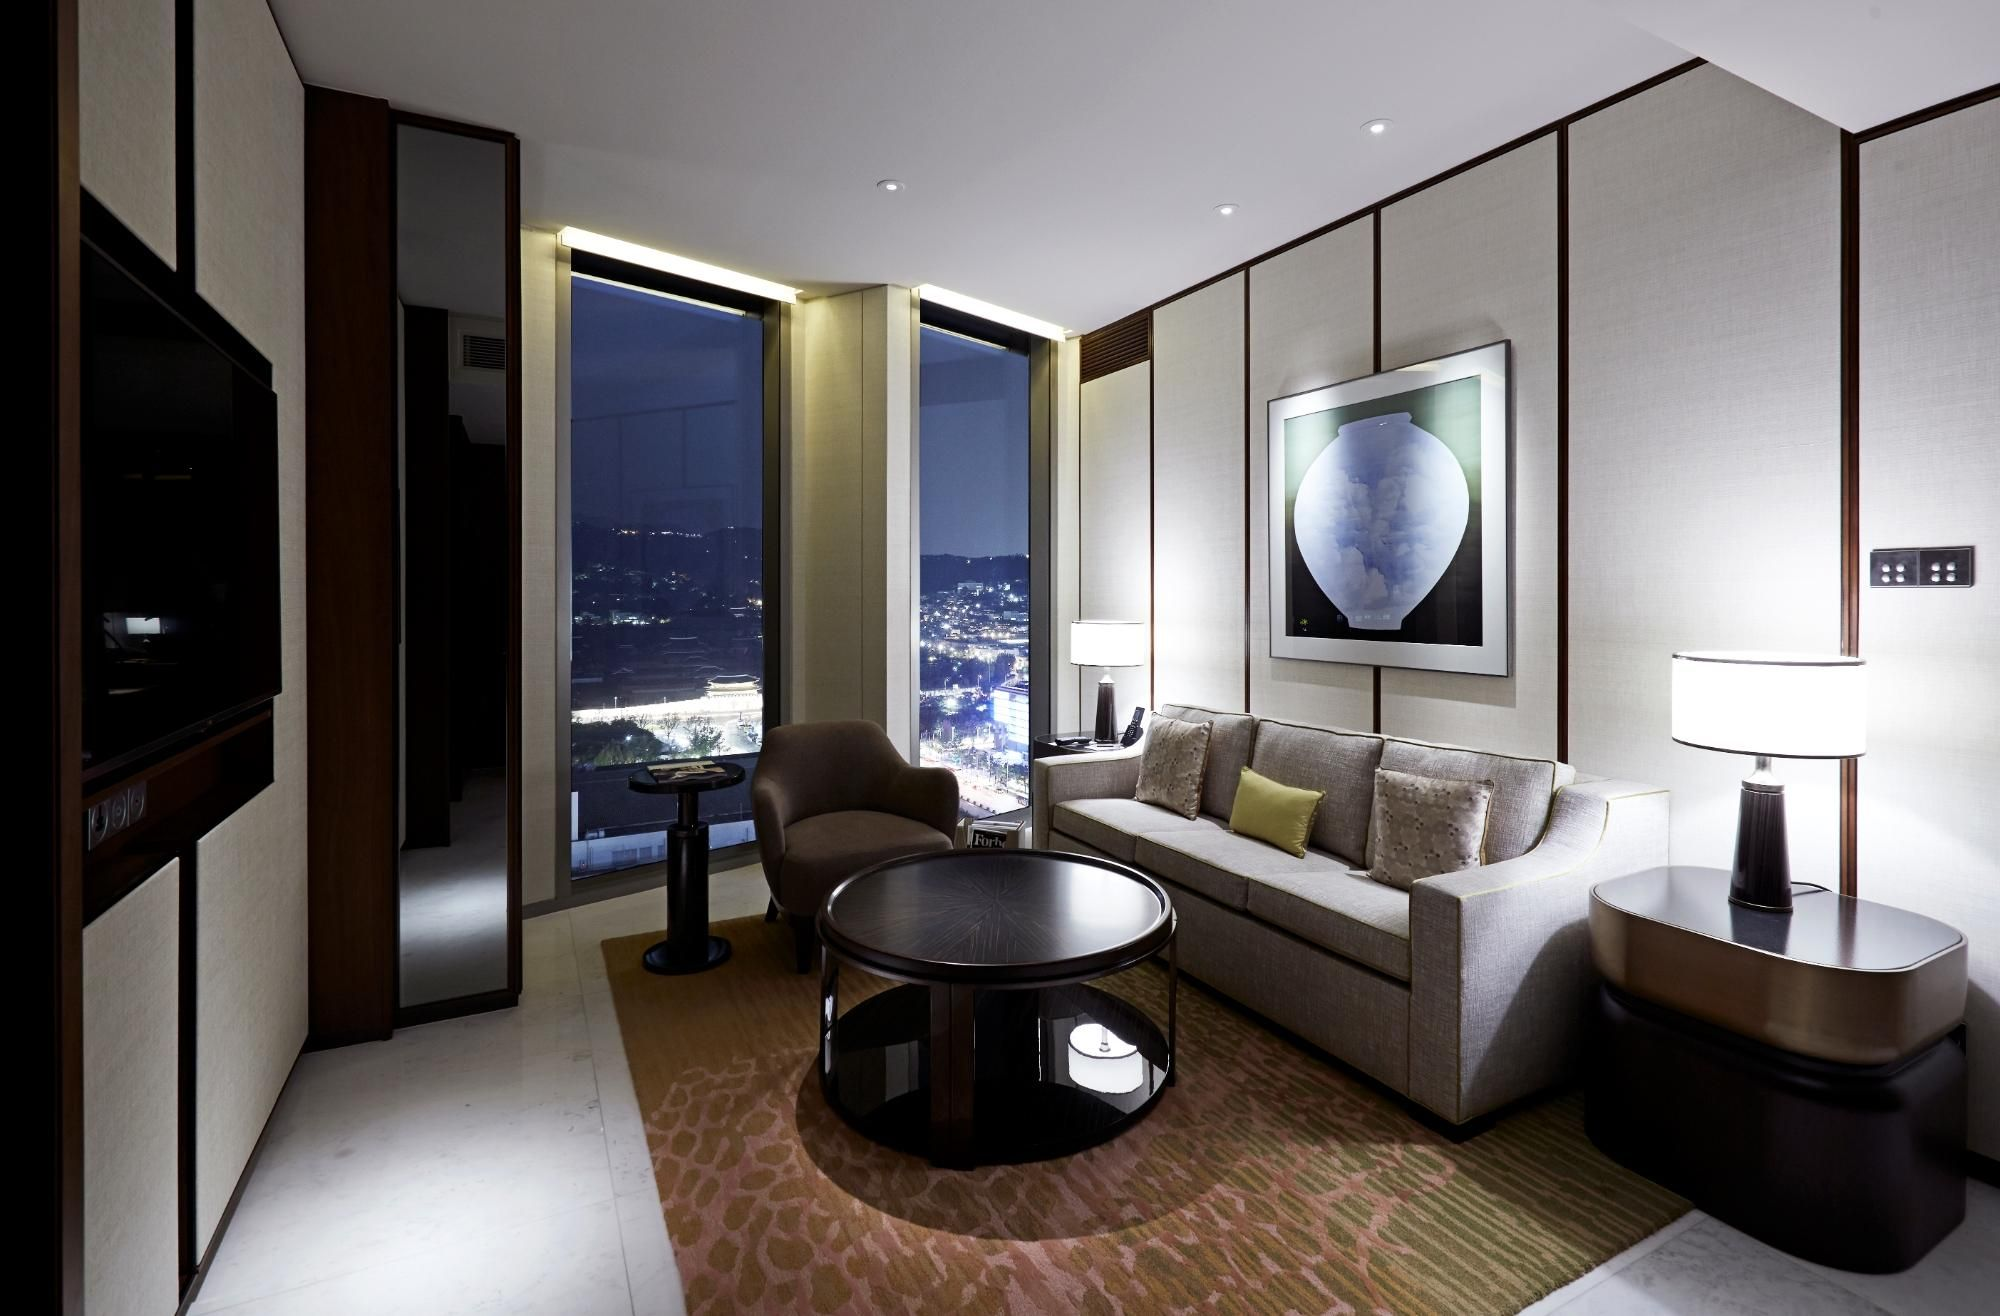 Accommodation details seoul luxury hotel accommodations rooms - Four Seasons Hotel Seoul South Korea